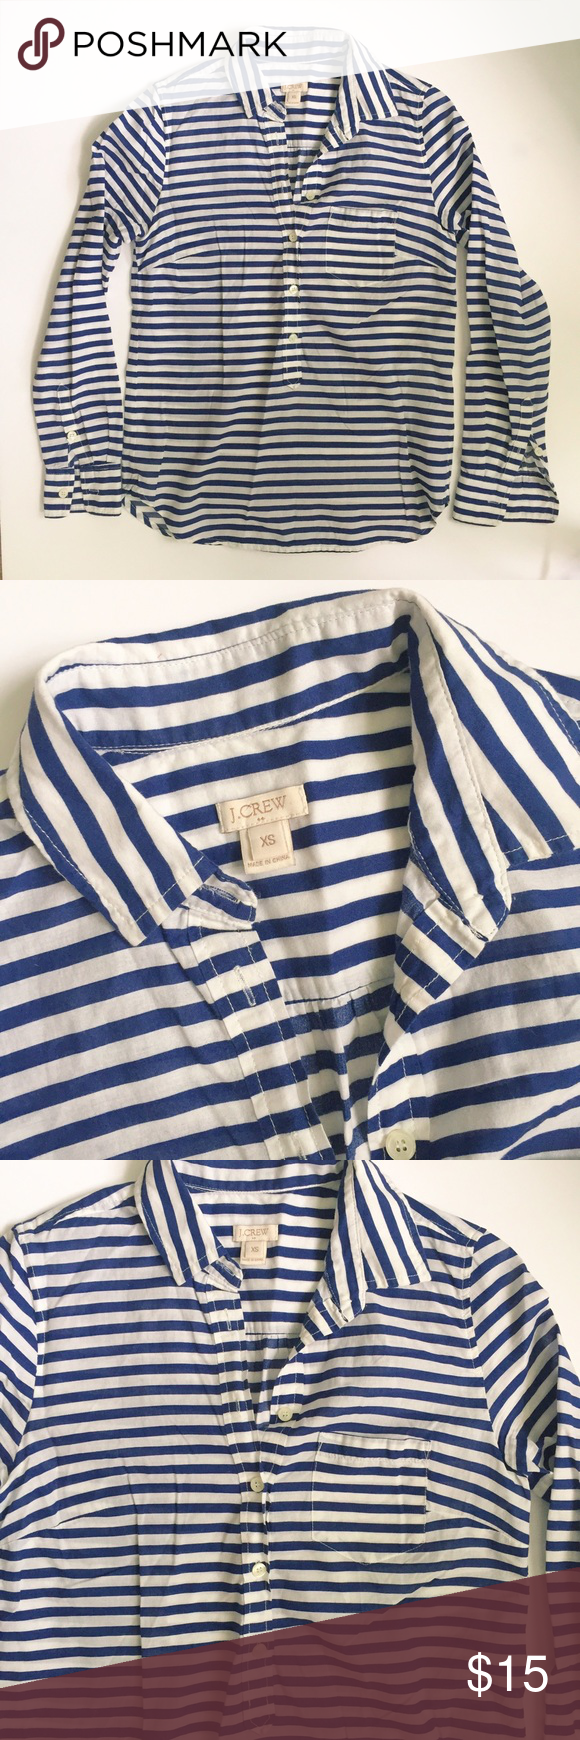 J.Crew Blue and White Striped Button Up Shirt J.Crew Blue and White Striped Button Up Shirt in X-small. This is a reposh as I was sad it was a little too tight for me. Buttons go about half way down the shirt. J. Crew Tops Button Down Shirts